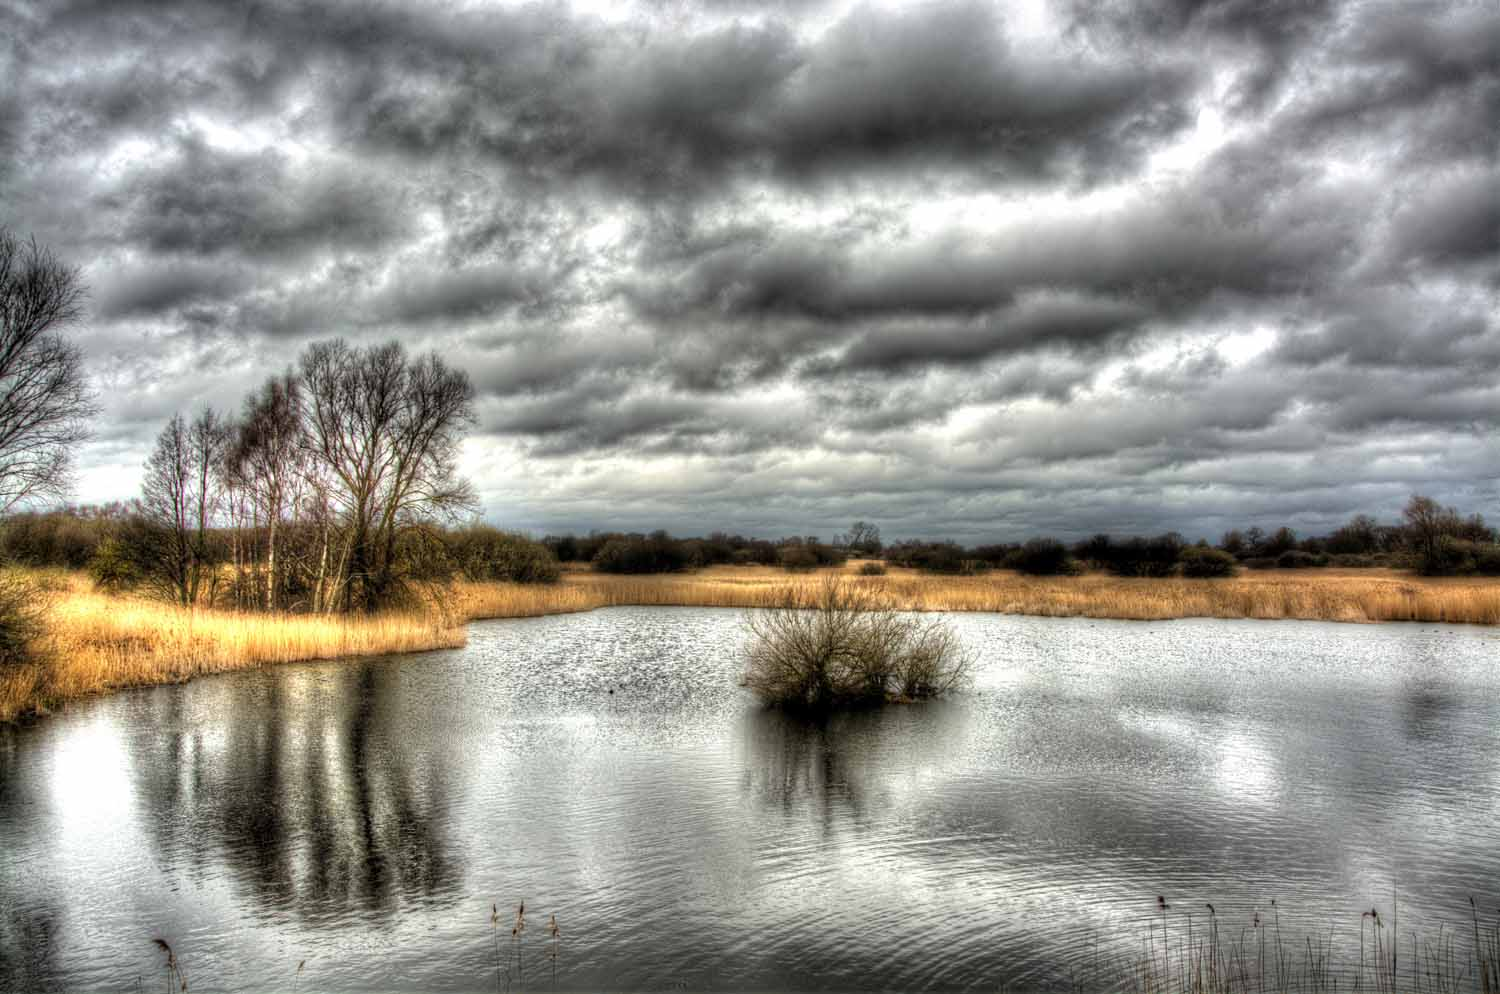 Second Place - Great Fen by Julie Coles